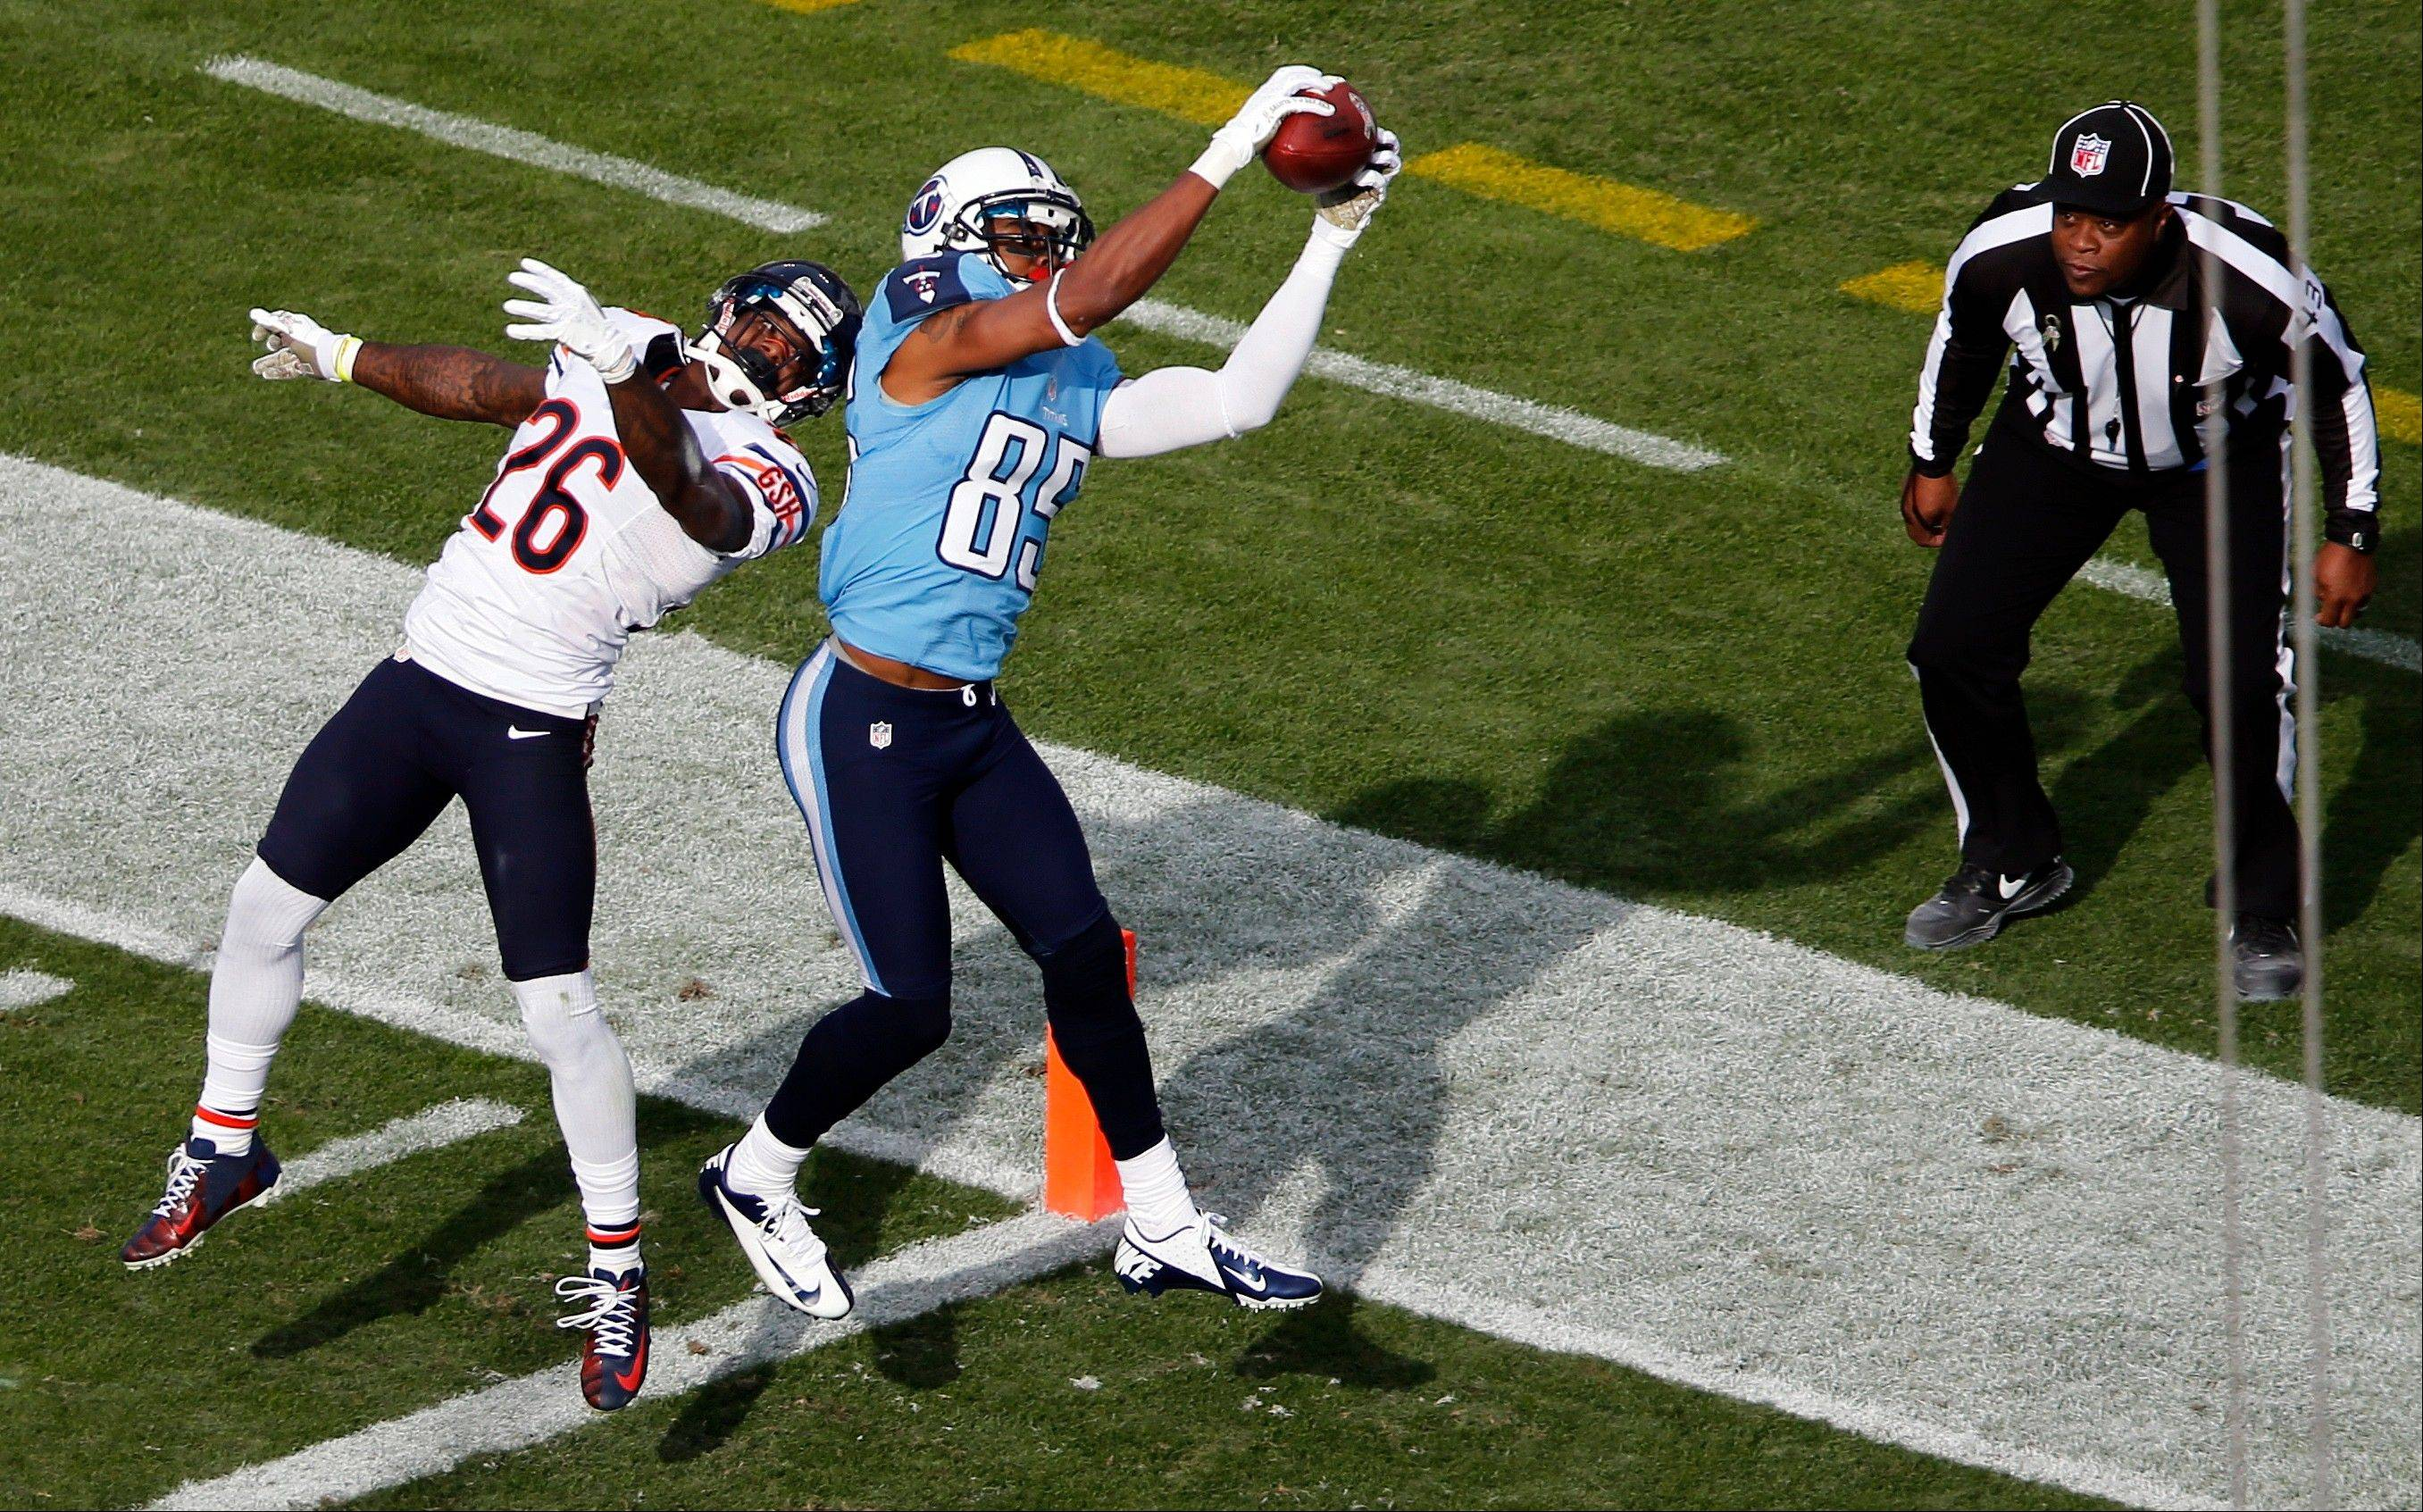 Tennessee Titans wide receiver Nate Washington catches a 30-yard touchdown pass as he is defended by Chicago Bears cornerback Tim Jennings in the third quarter.